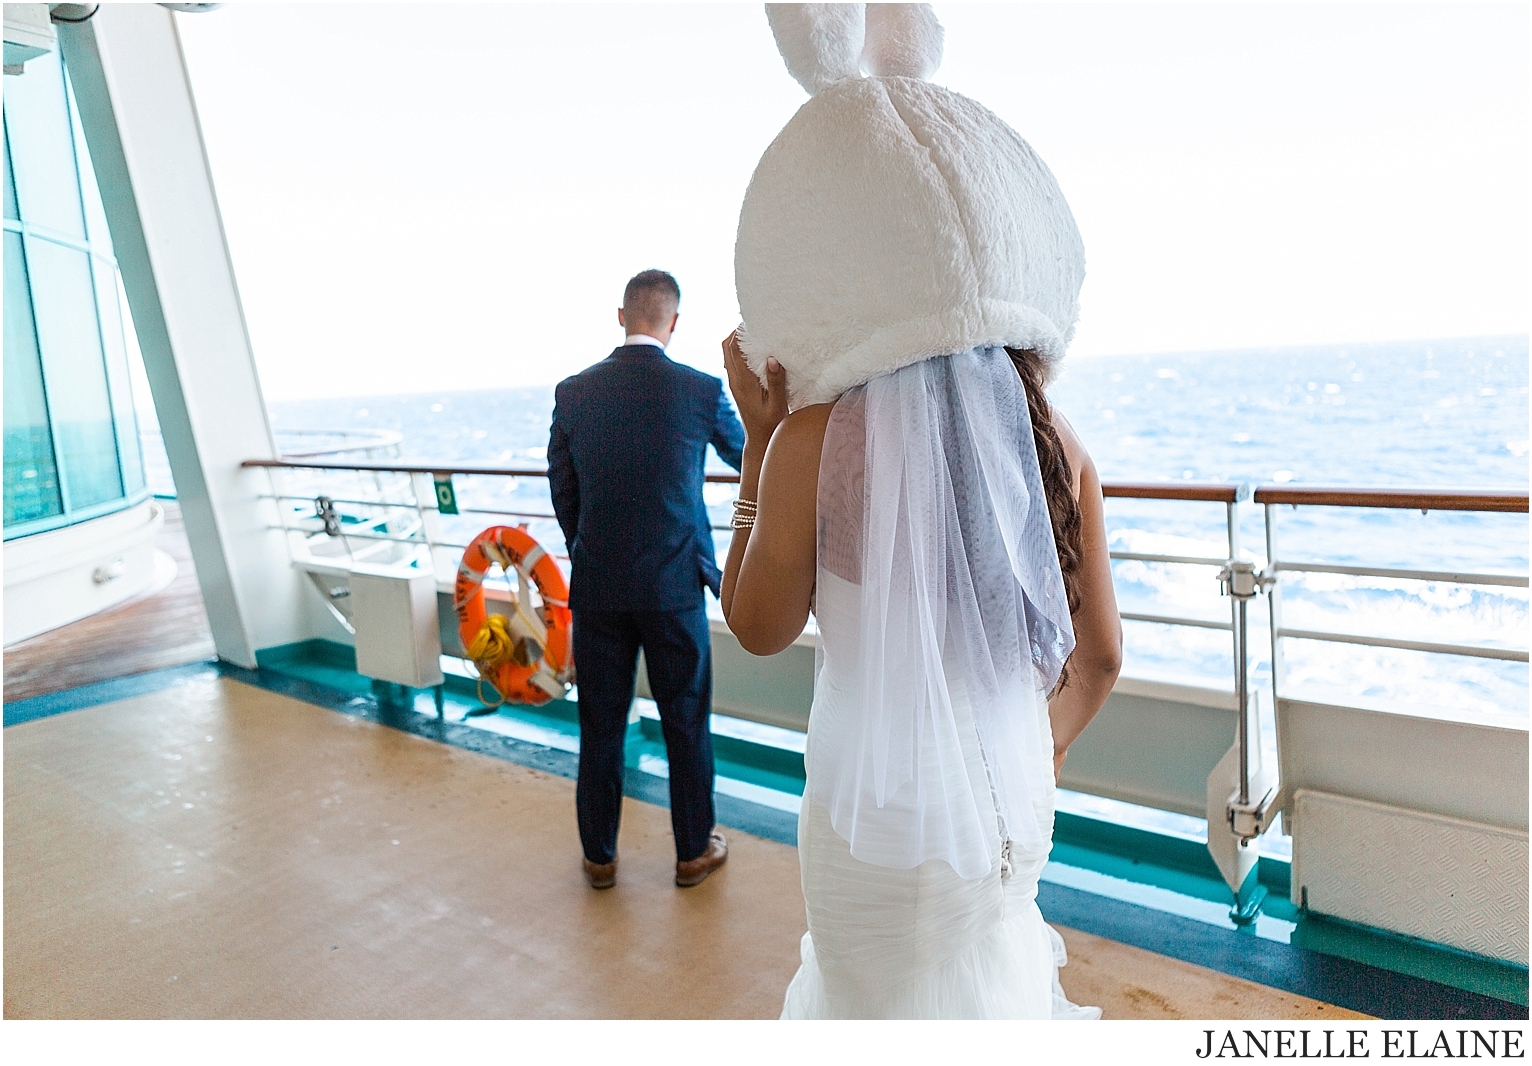 white wedding-royal caribbean-janelle elaine photography-144.jpg